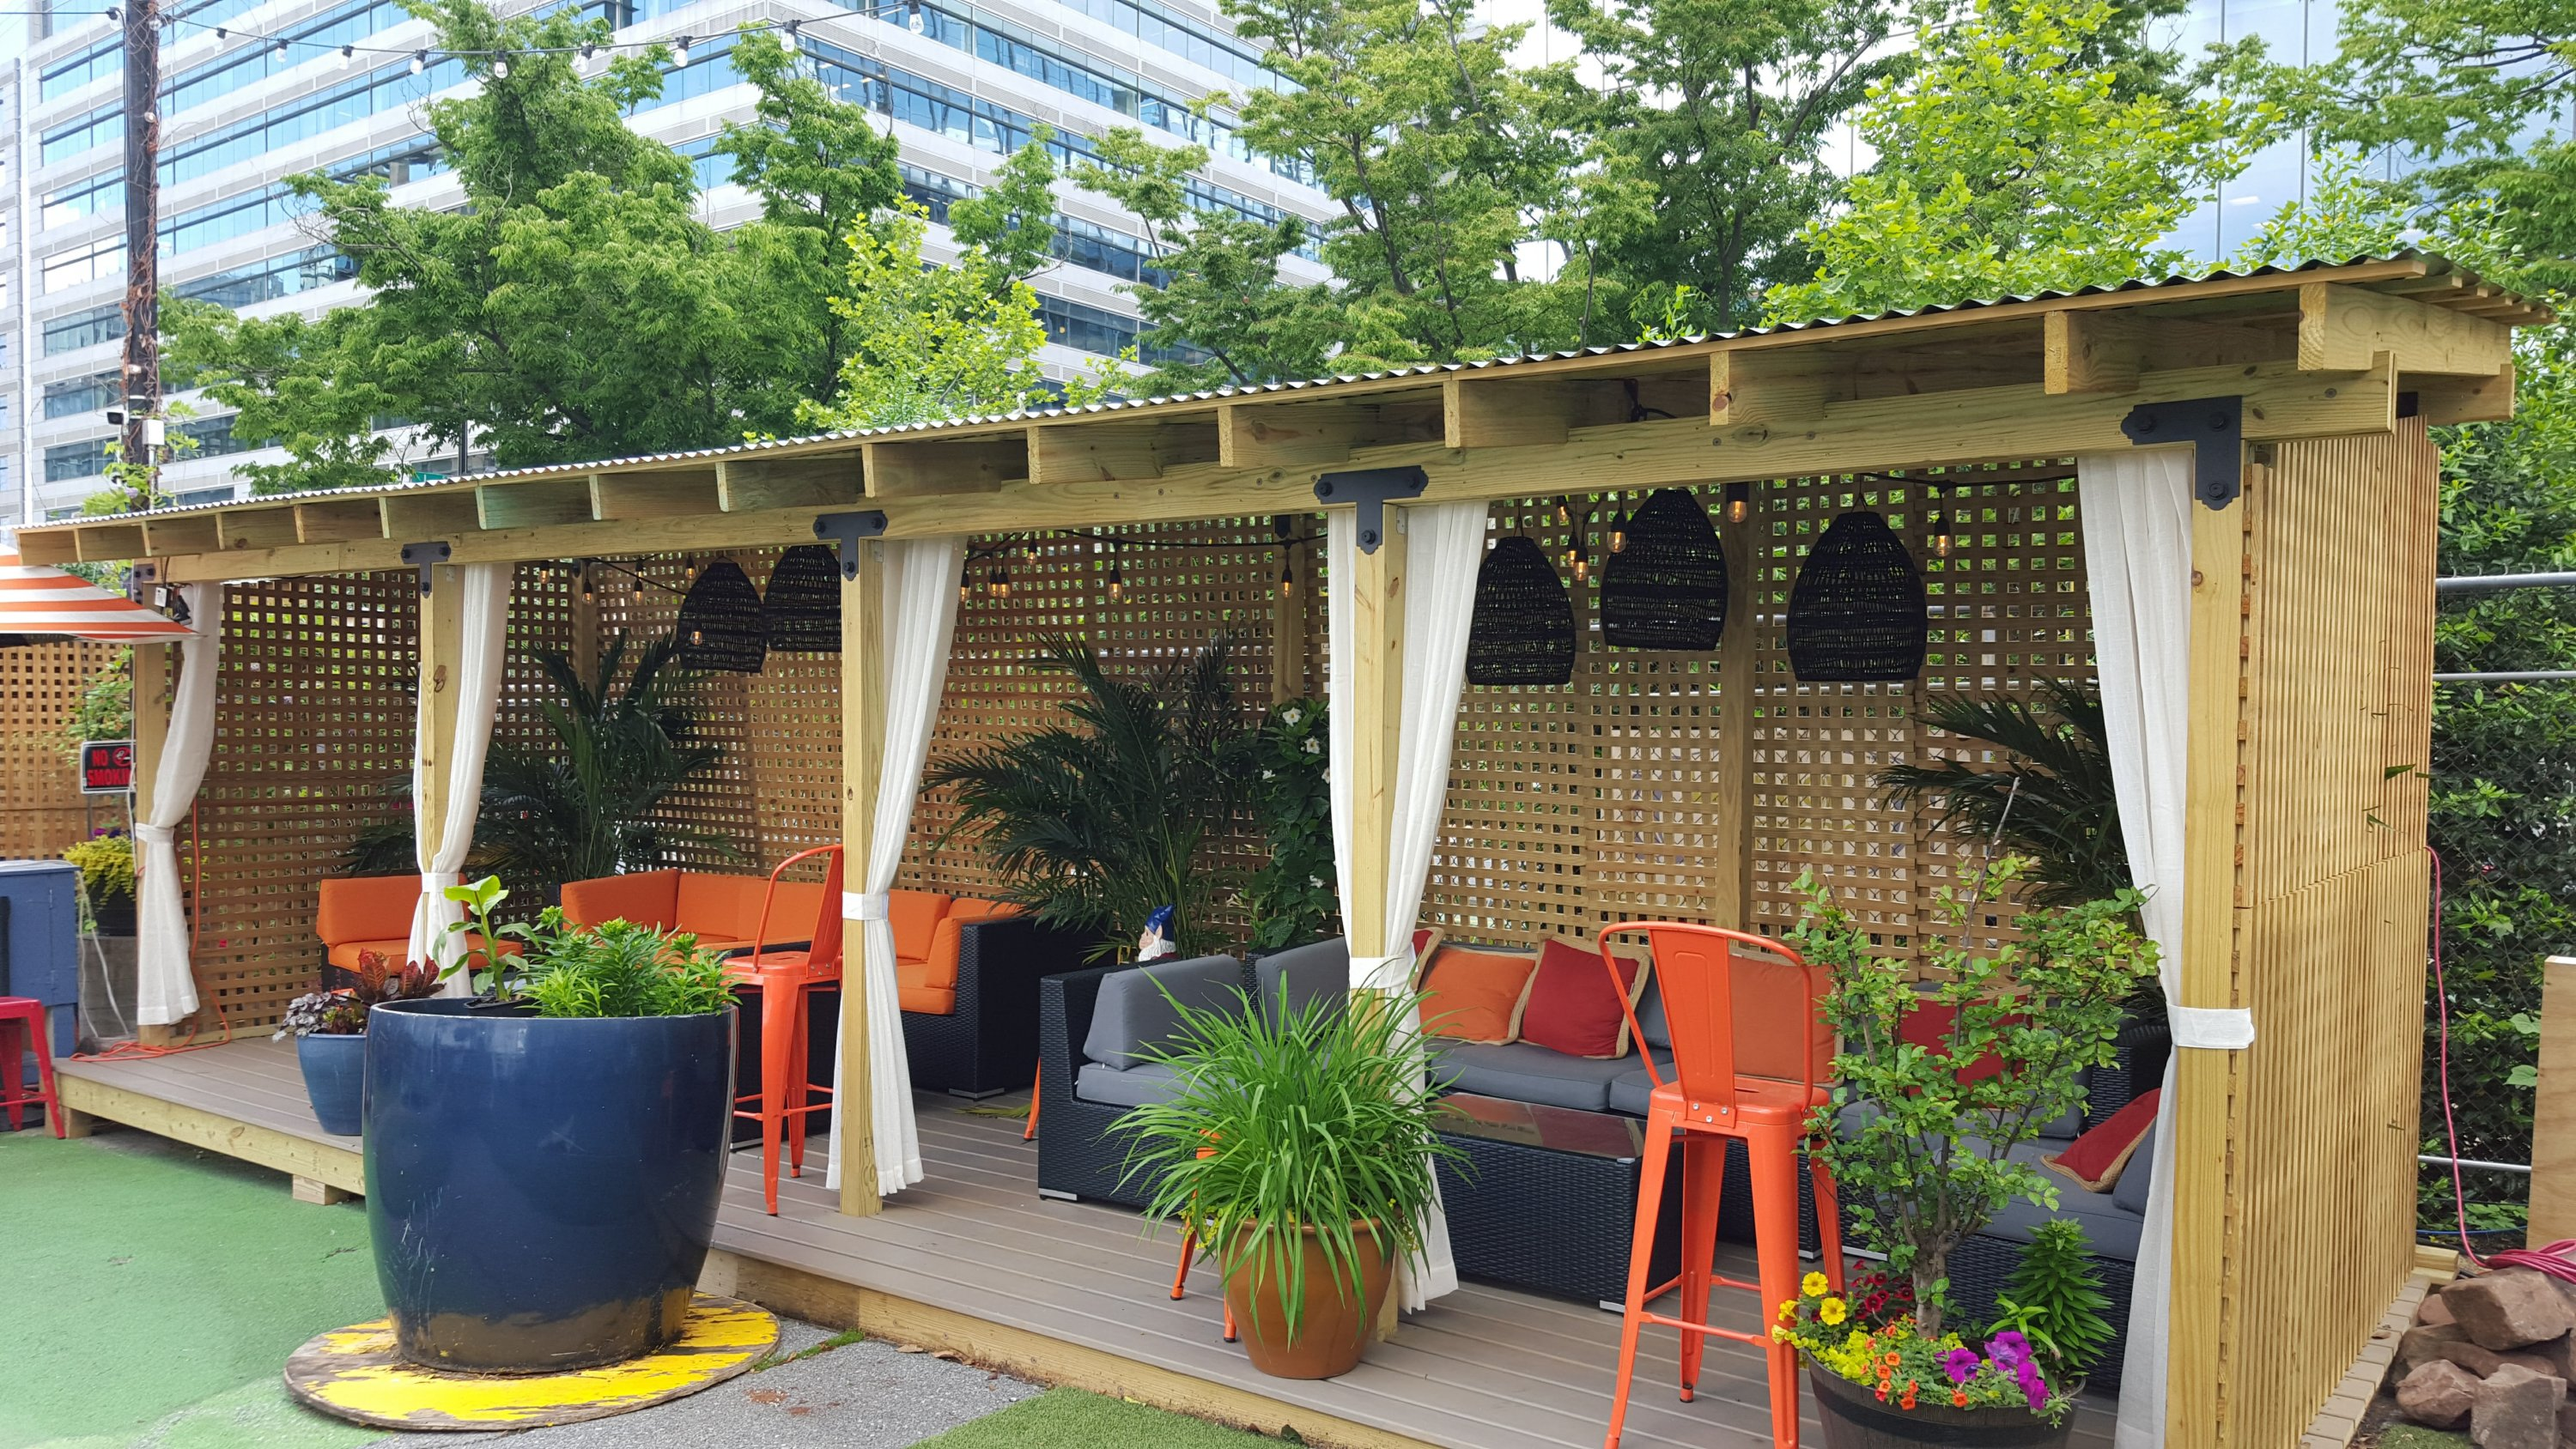 Wunder Garten has multiple cabanas available for reservation. Photo courtesy of Wunder Garten.